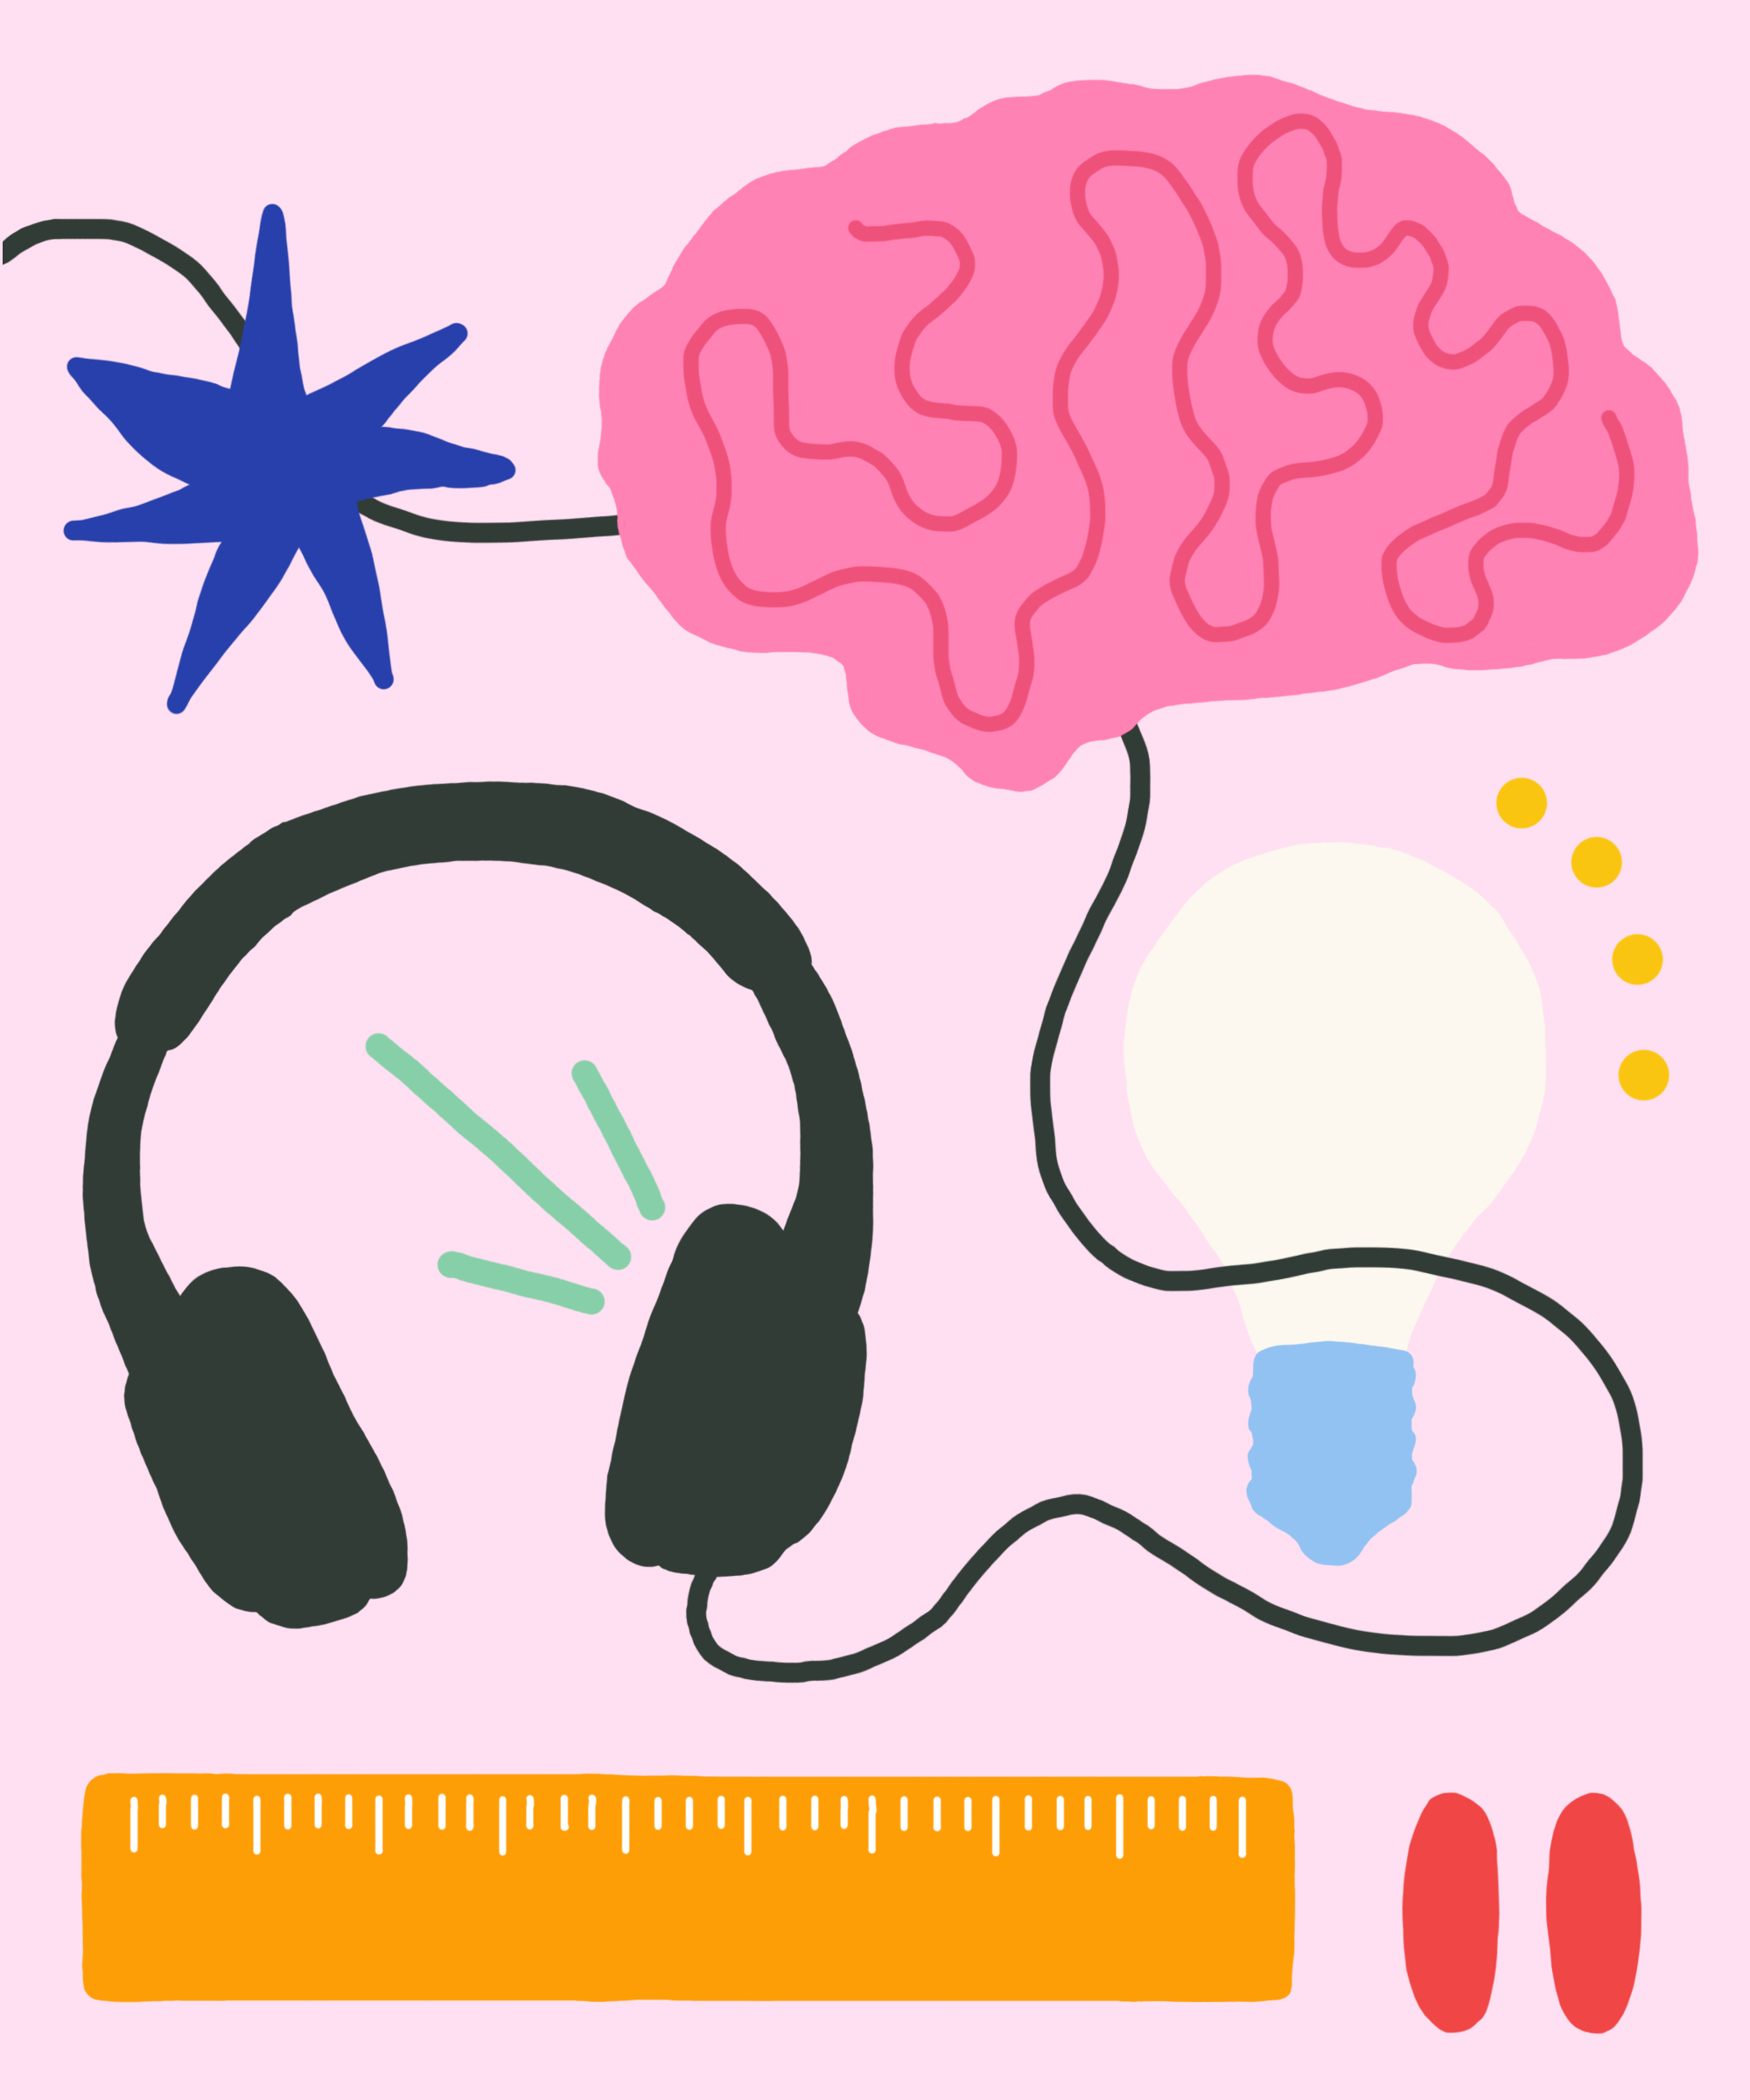 14 Podcasts That Will Make You Smarter